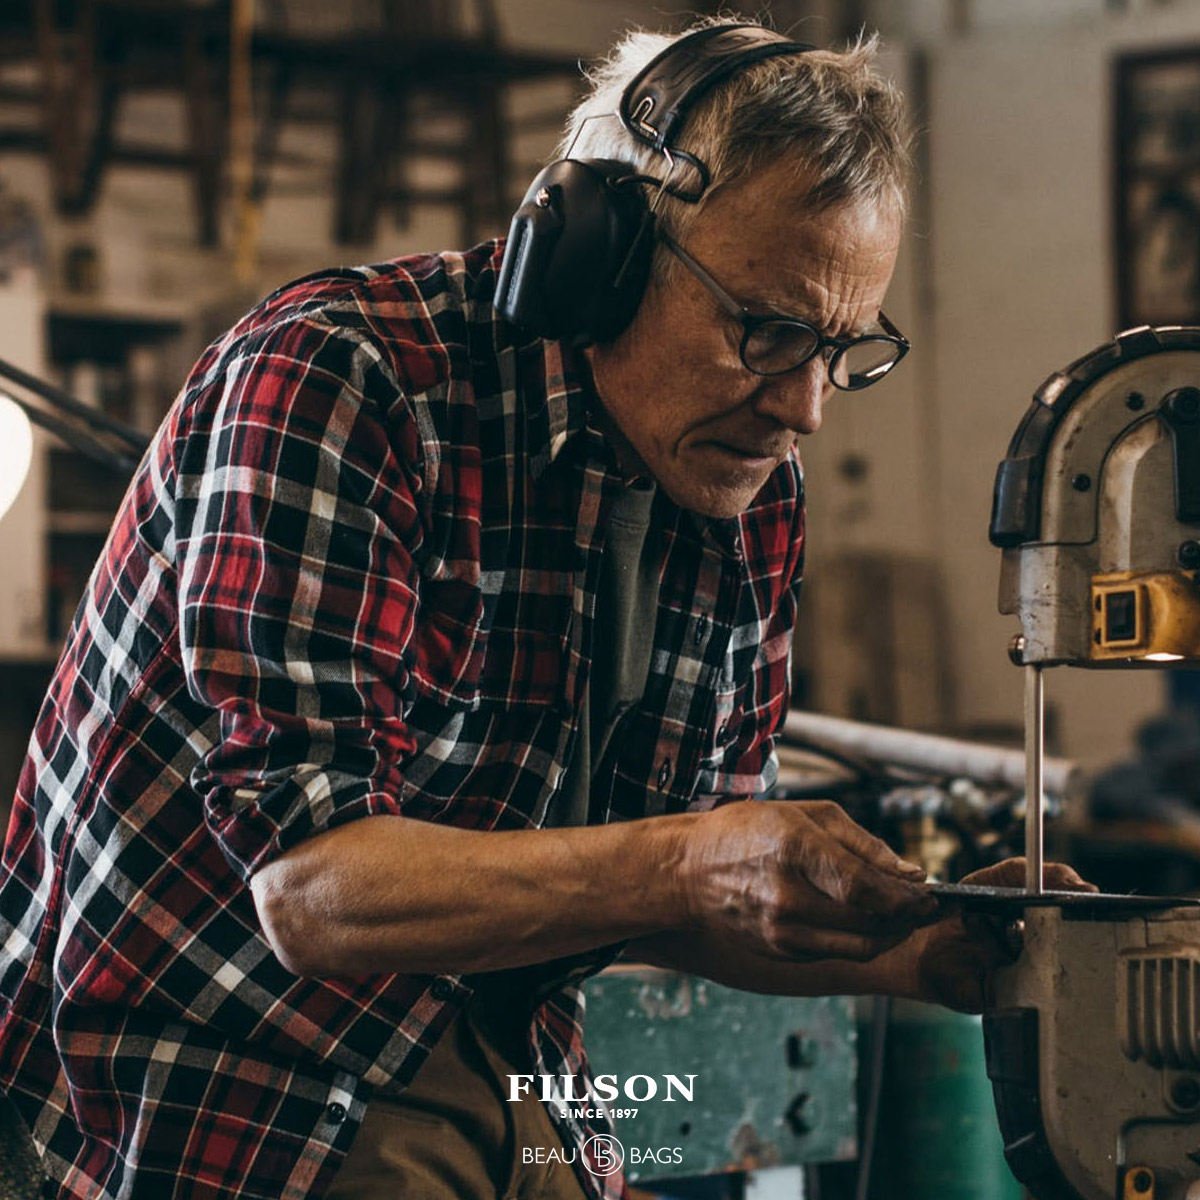 Filson Scout Shirt, ideal shirt for everyday or work-wea